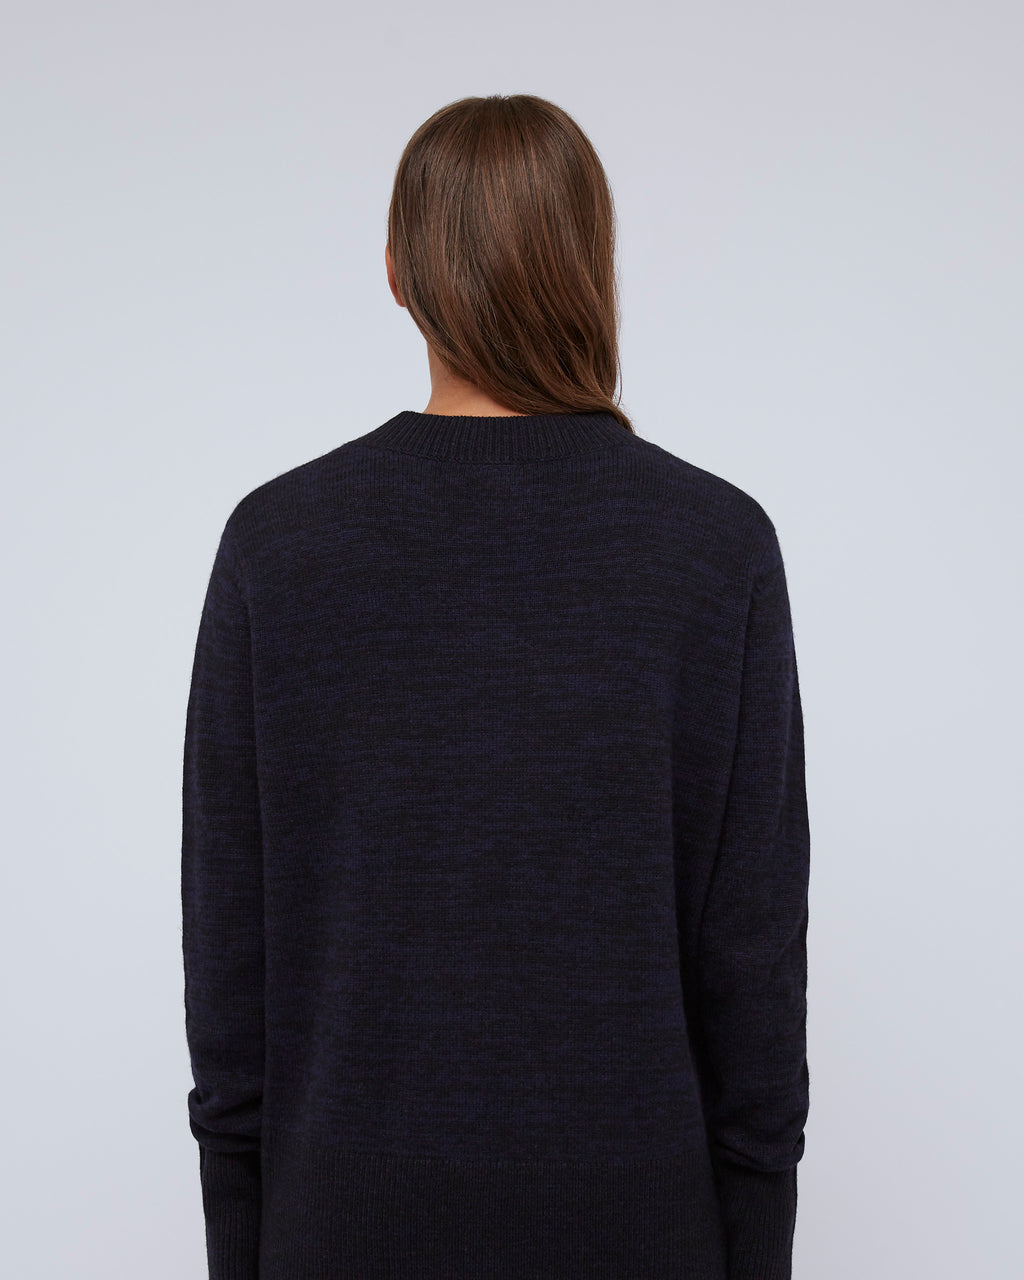 The Lana Sweater In Graphite Blue